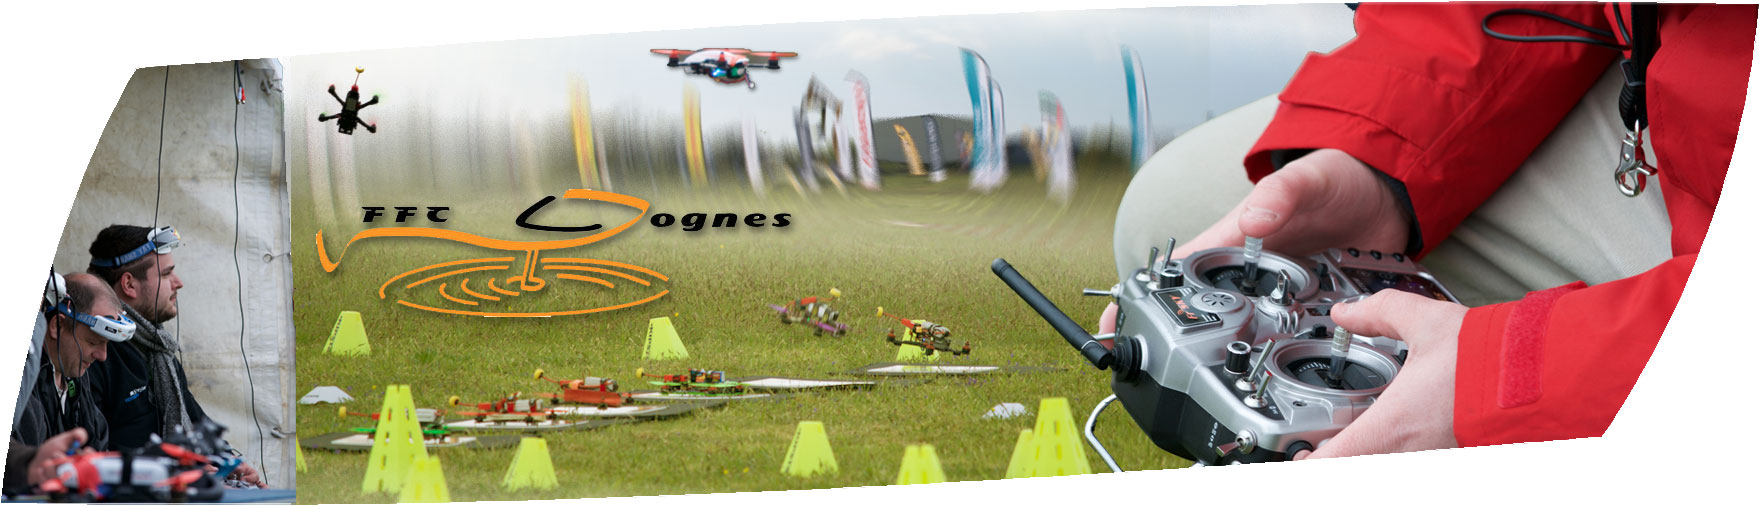 Championnat de France de FPV Racing Multi-rotor du 1 au 3 septembre 2017 à la Queue-en-Brie (94)